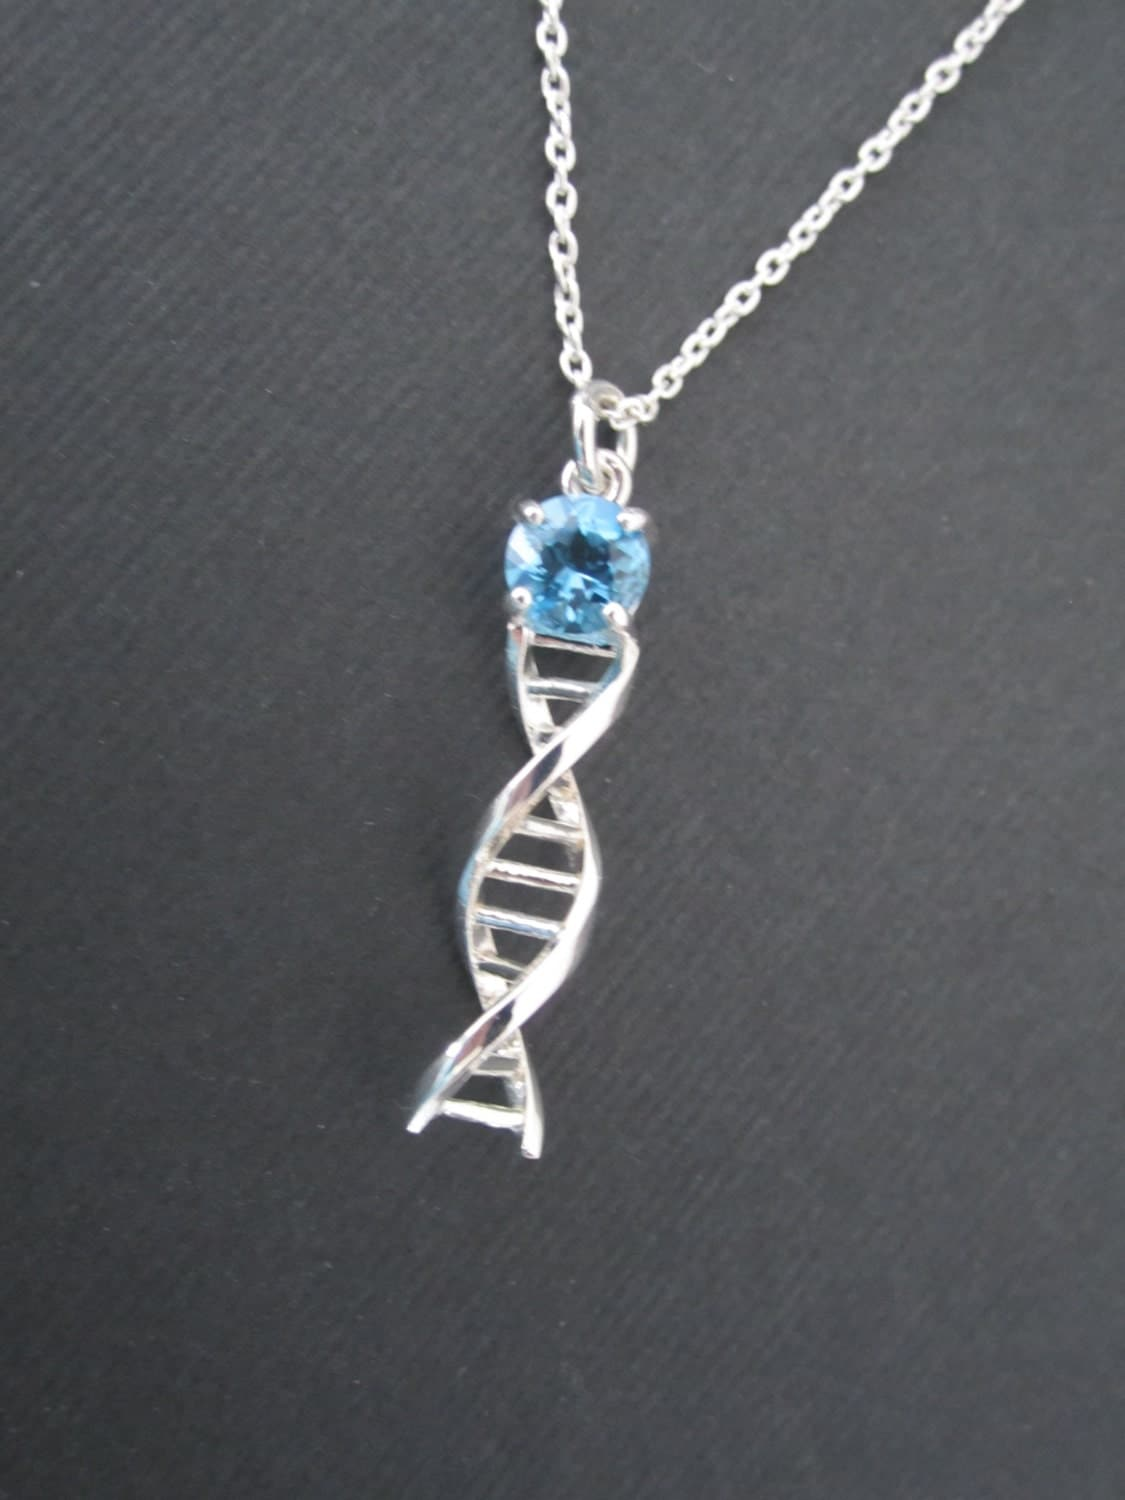 Dna Jewelry Necklace Pendant Sterling Silver Chain Birthstone